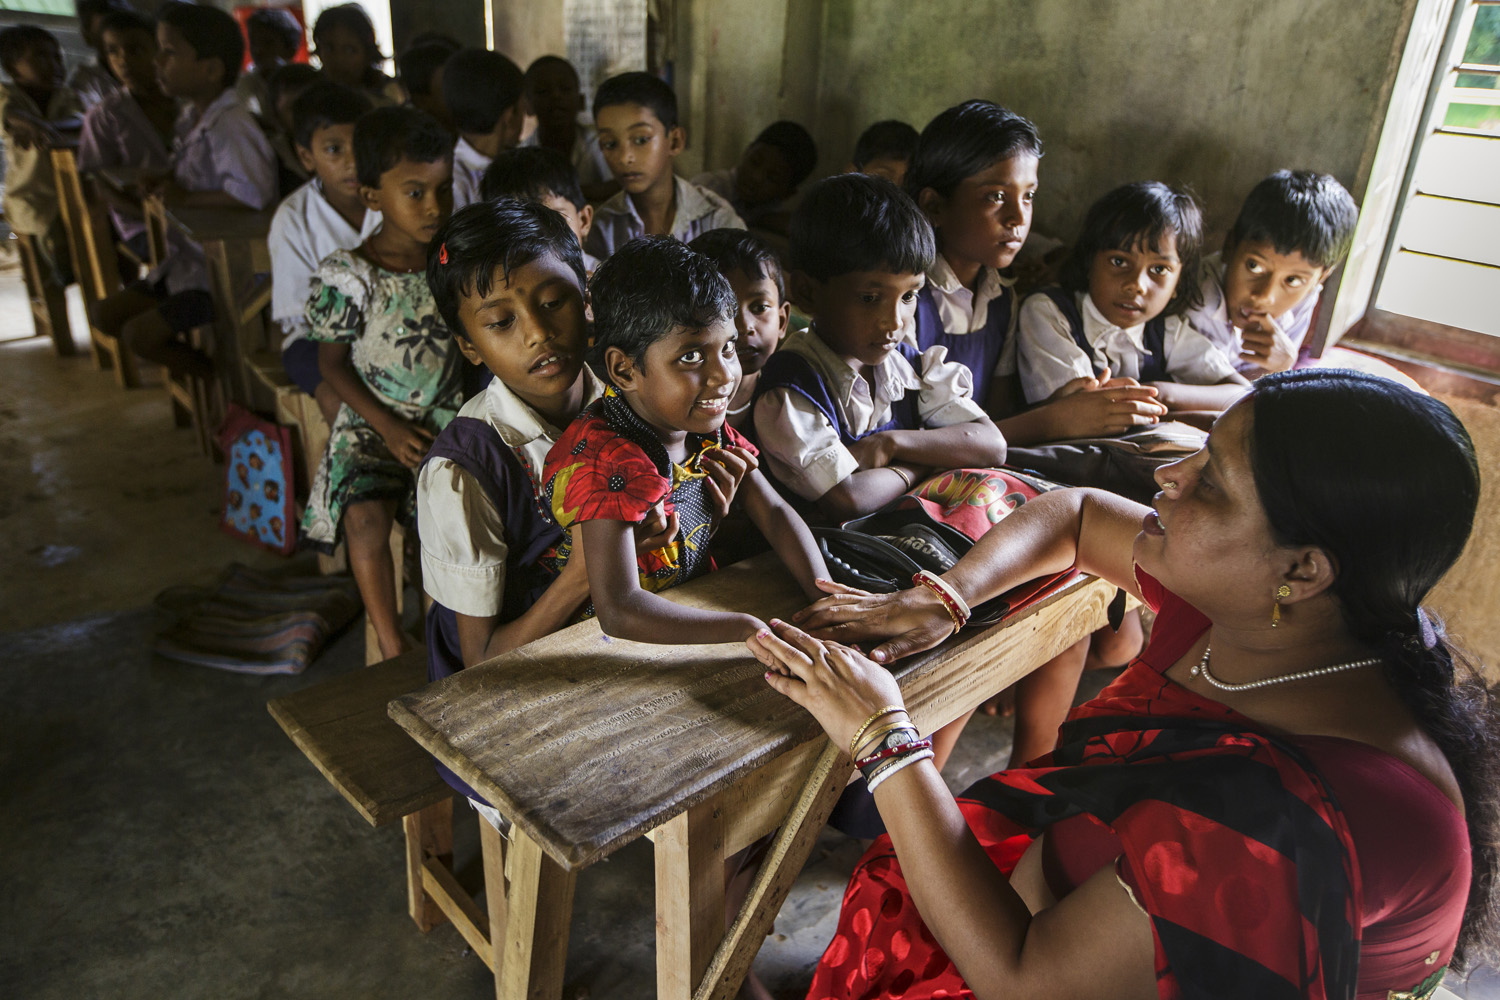 Lessons in progress at a rural Indian school, on Oct. 20, 2013 in West Bengal, India.